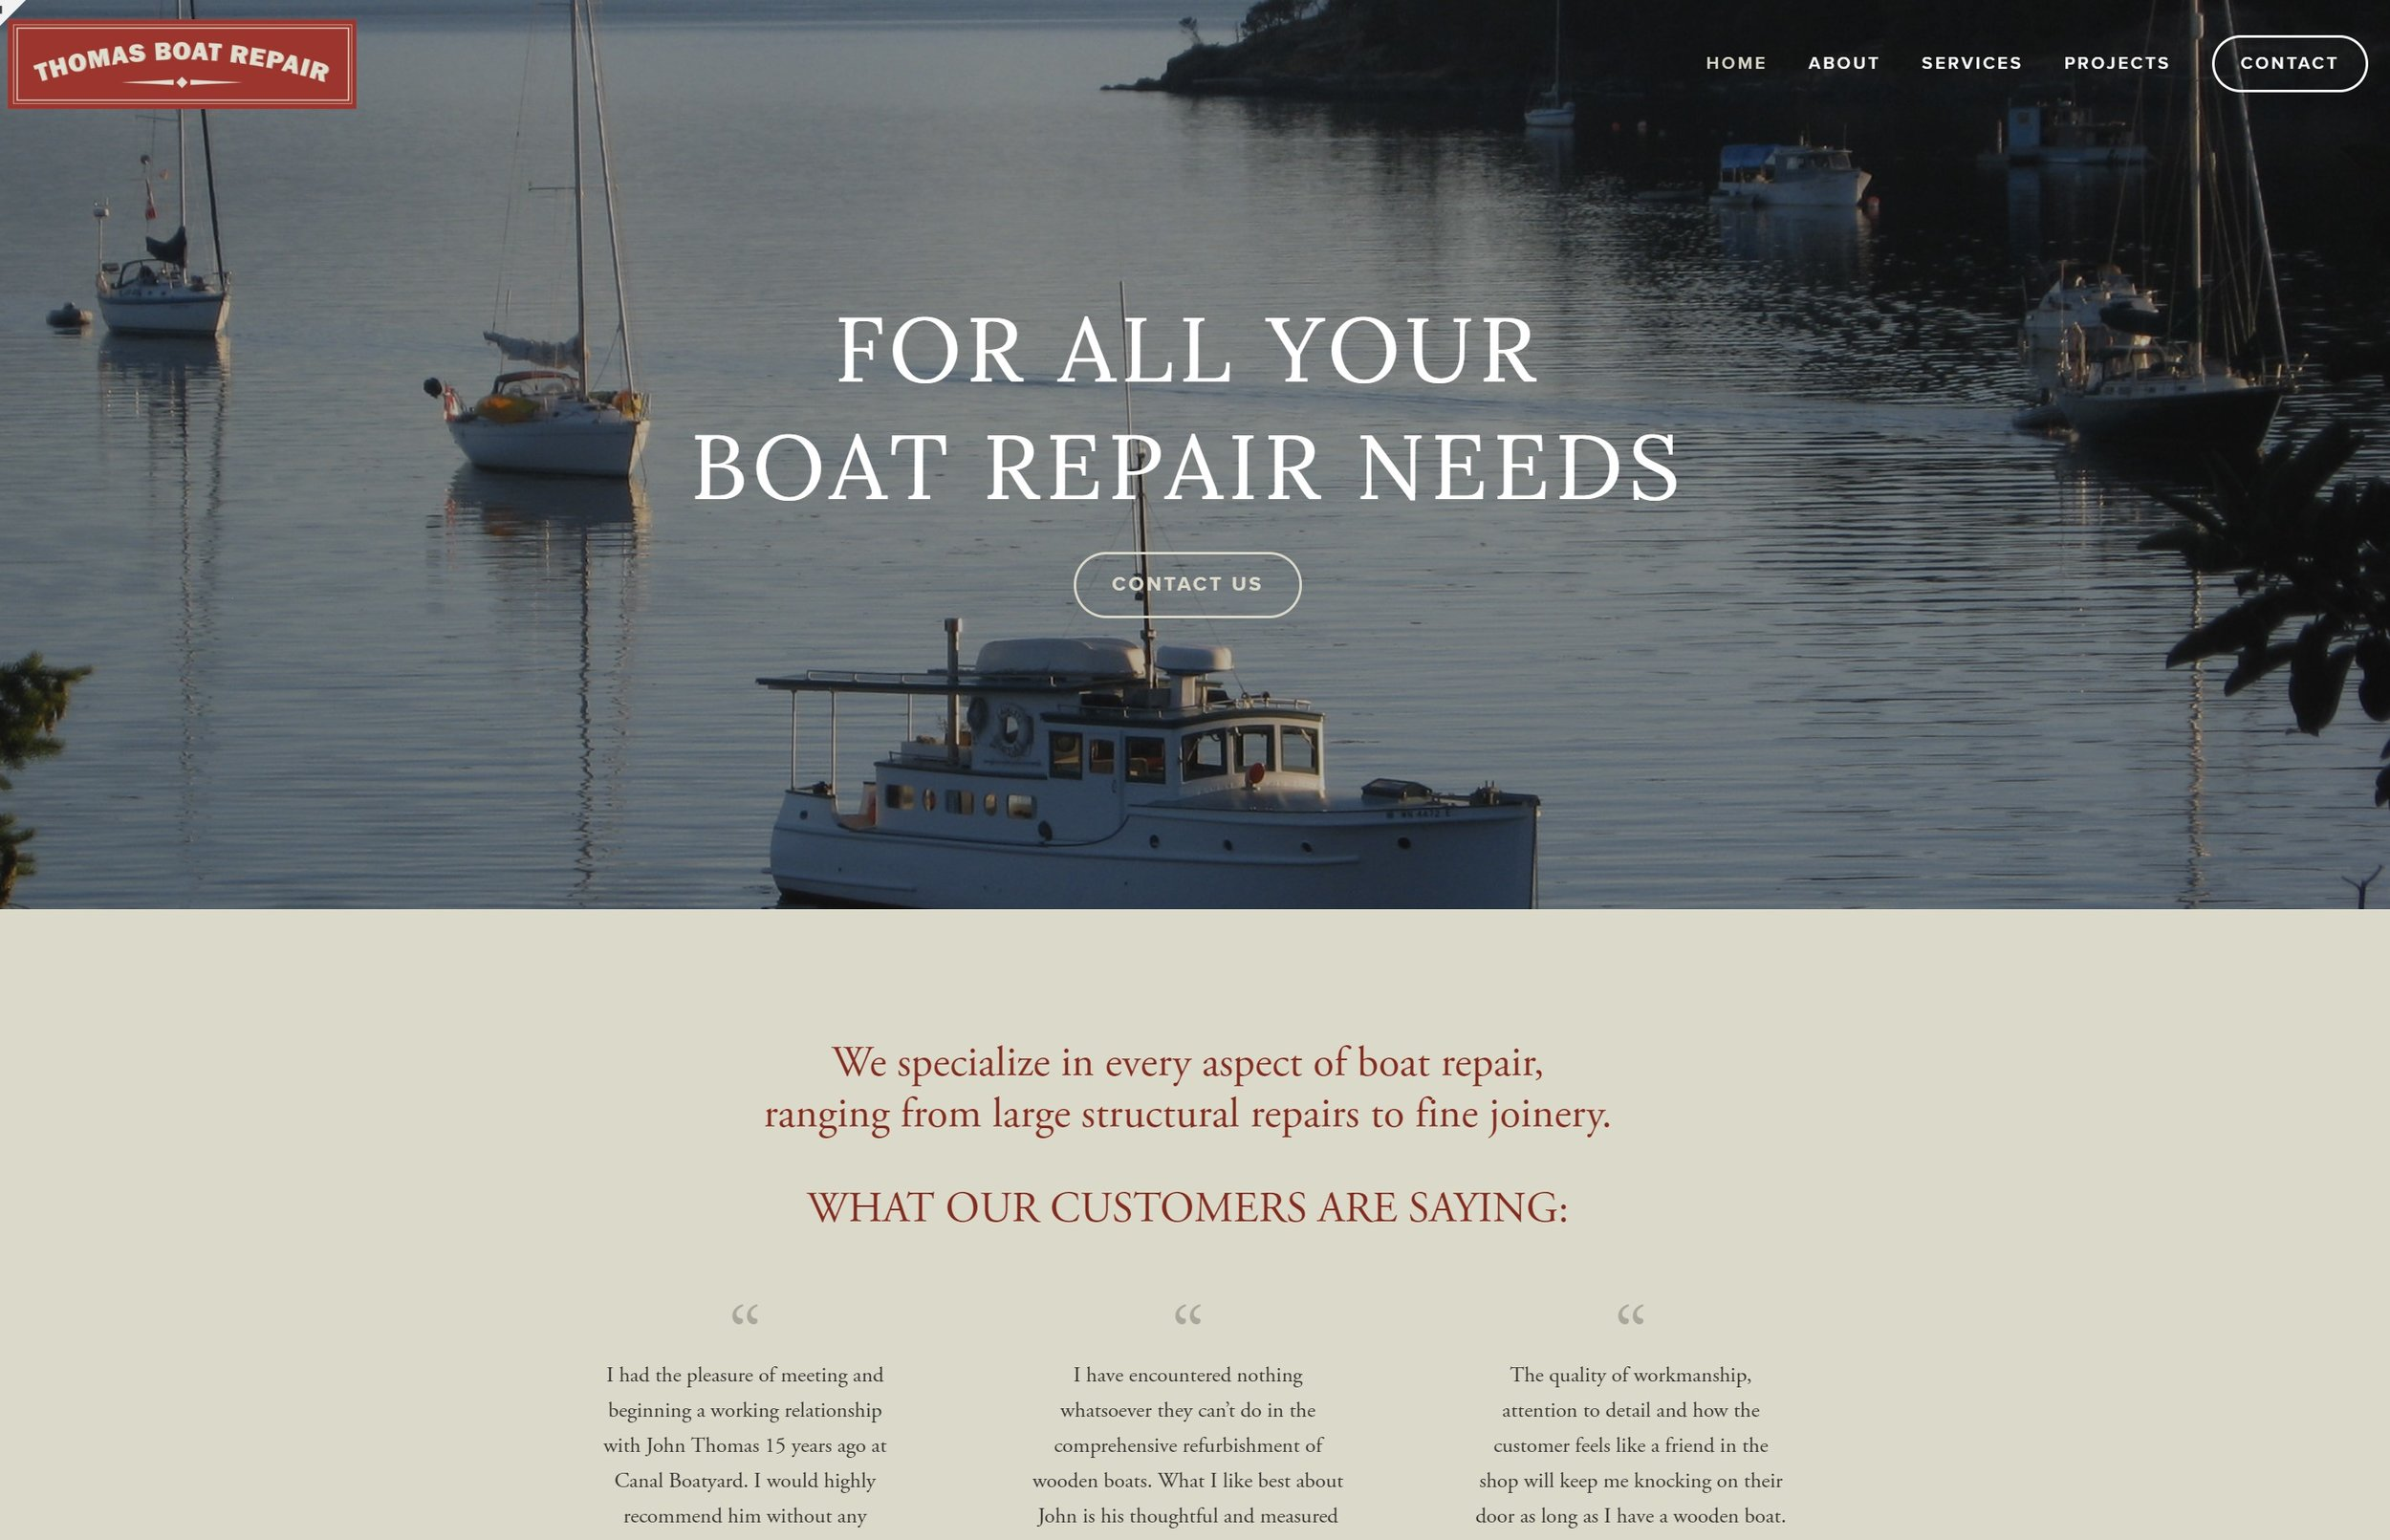 Thomas Boat Repair